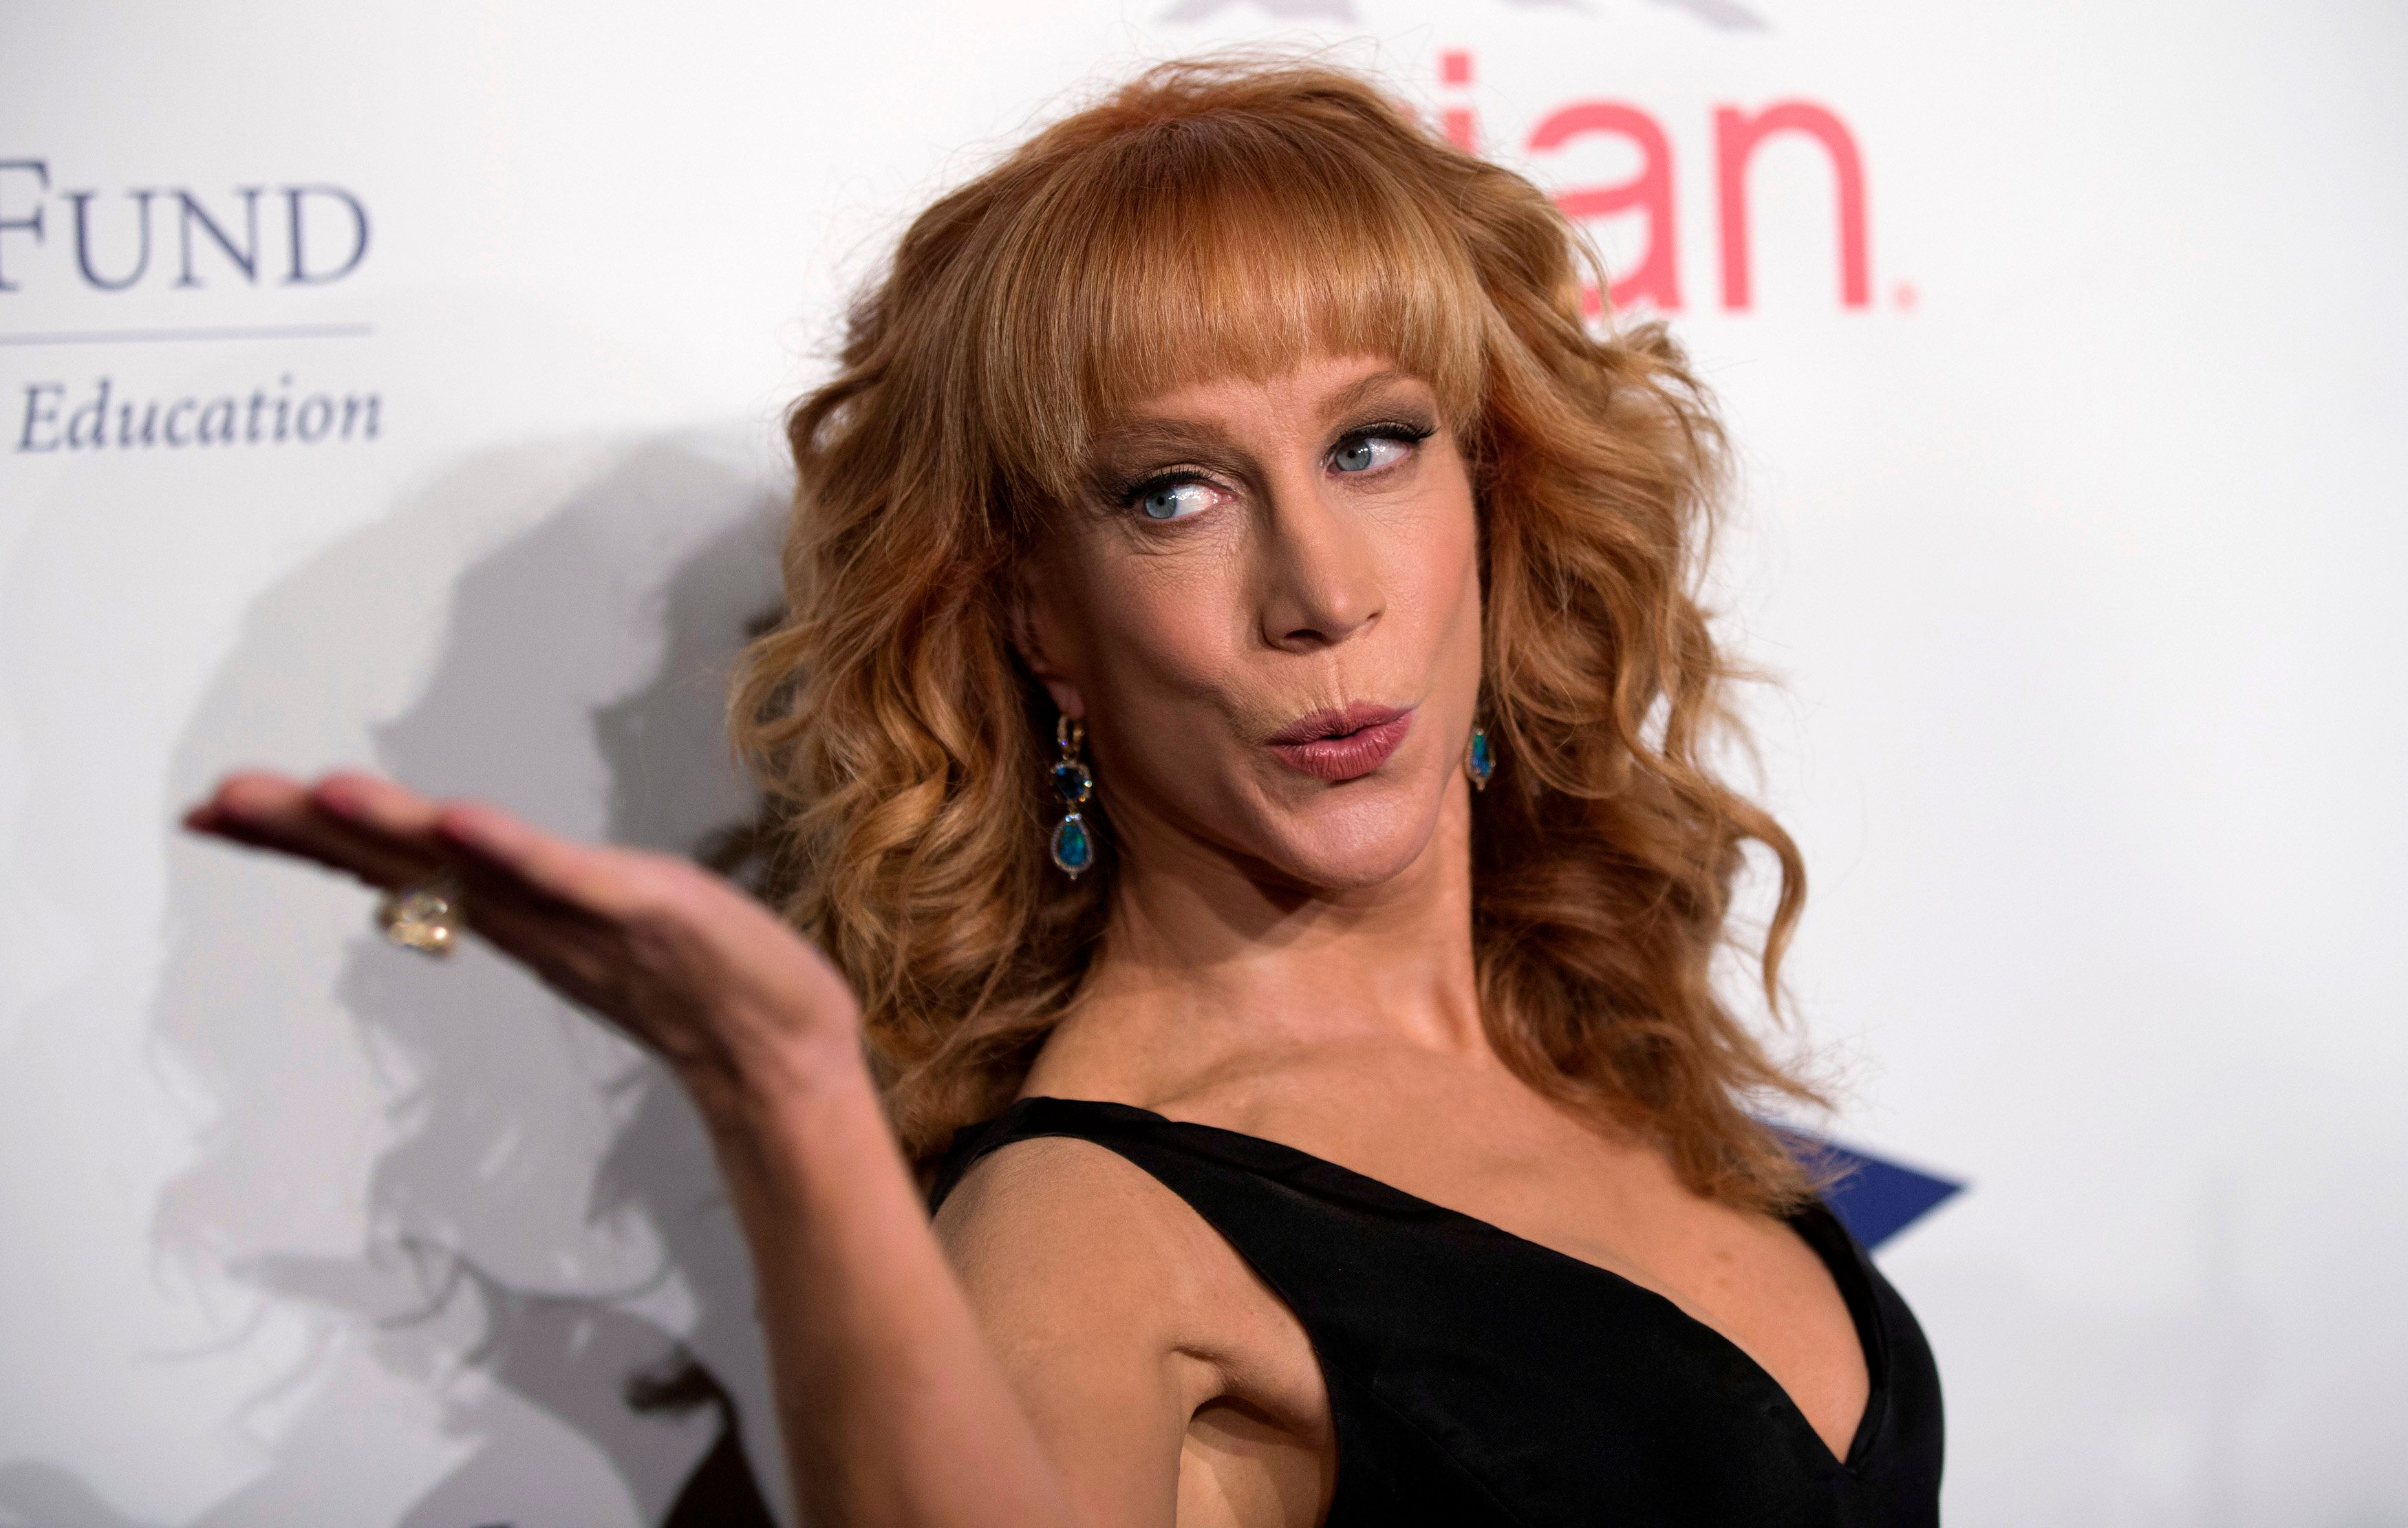 Comedian Kathy Griffin blows a kiss at photographers at the 20th Annual Fulfillment Fund Stars benefit gala in Beverly Hills, California October 14, 2014. REUTERS/Mario Anzuoni  (UNITED STATES - Tags: ENTERTAINMENT)